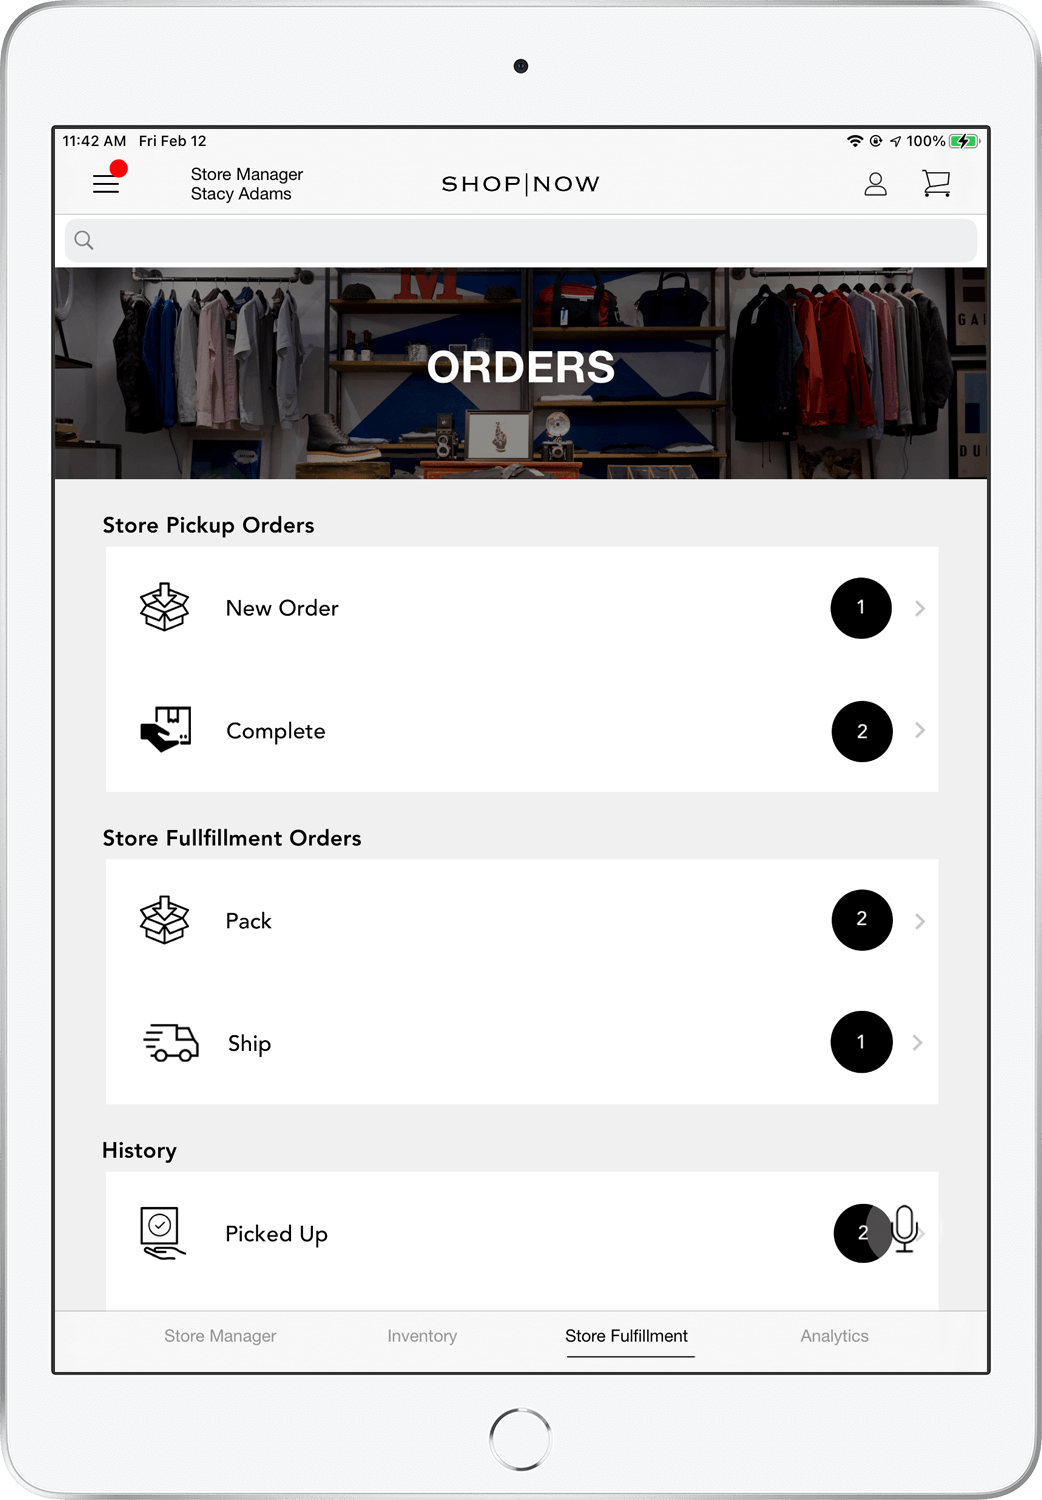 Personalization in Native Mobile App Powered By PredictSpring - Preference Quiz on iPhone X